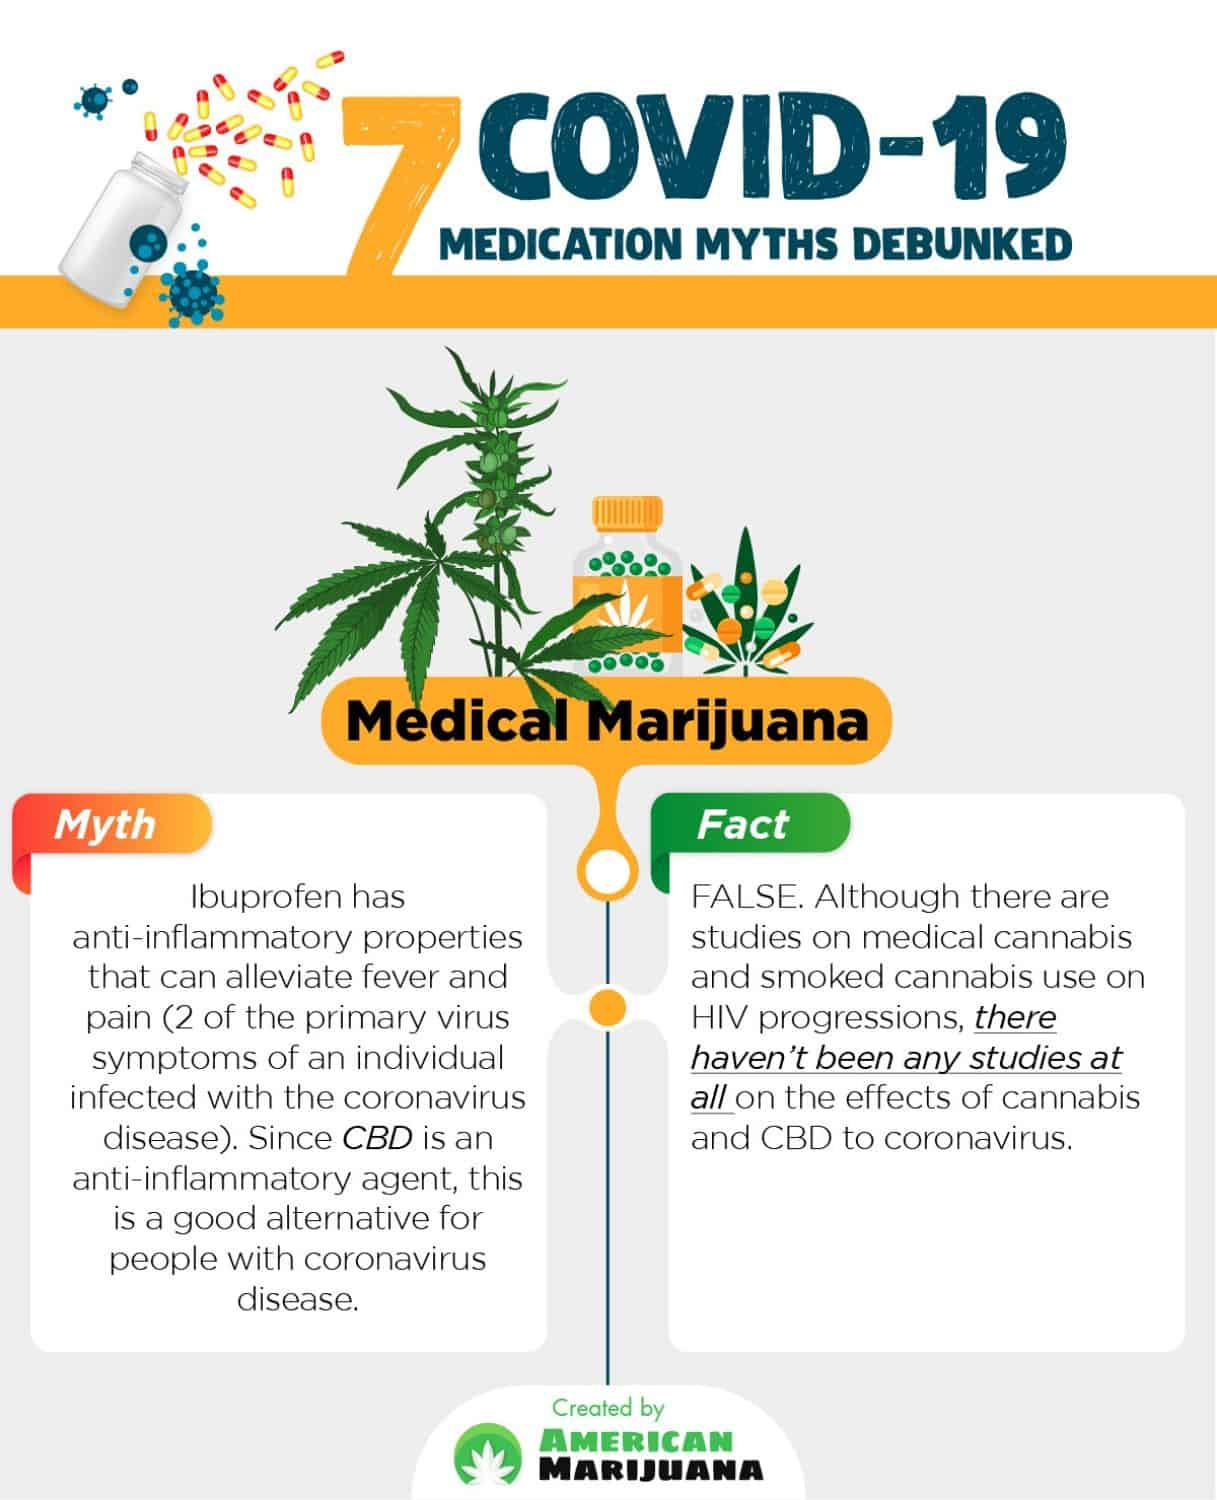 COVID-19 Impacts on Weed-smoking Habits and Attitude towards It: New Study of 1017 U.S Weed Smokers